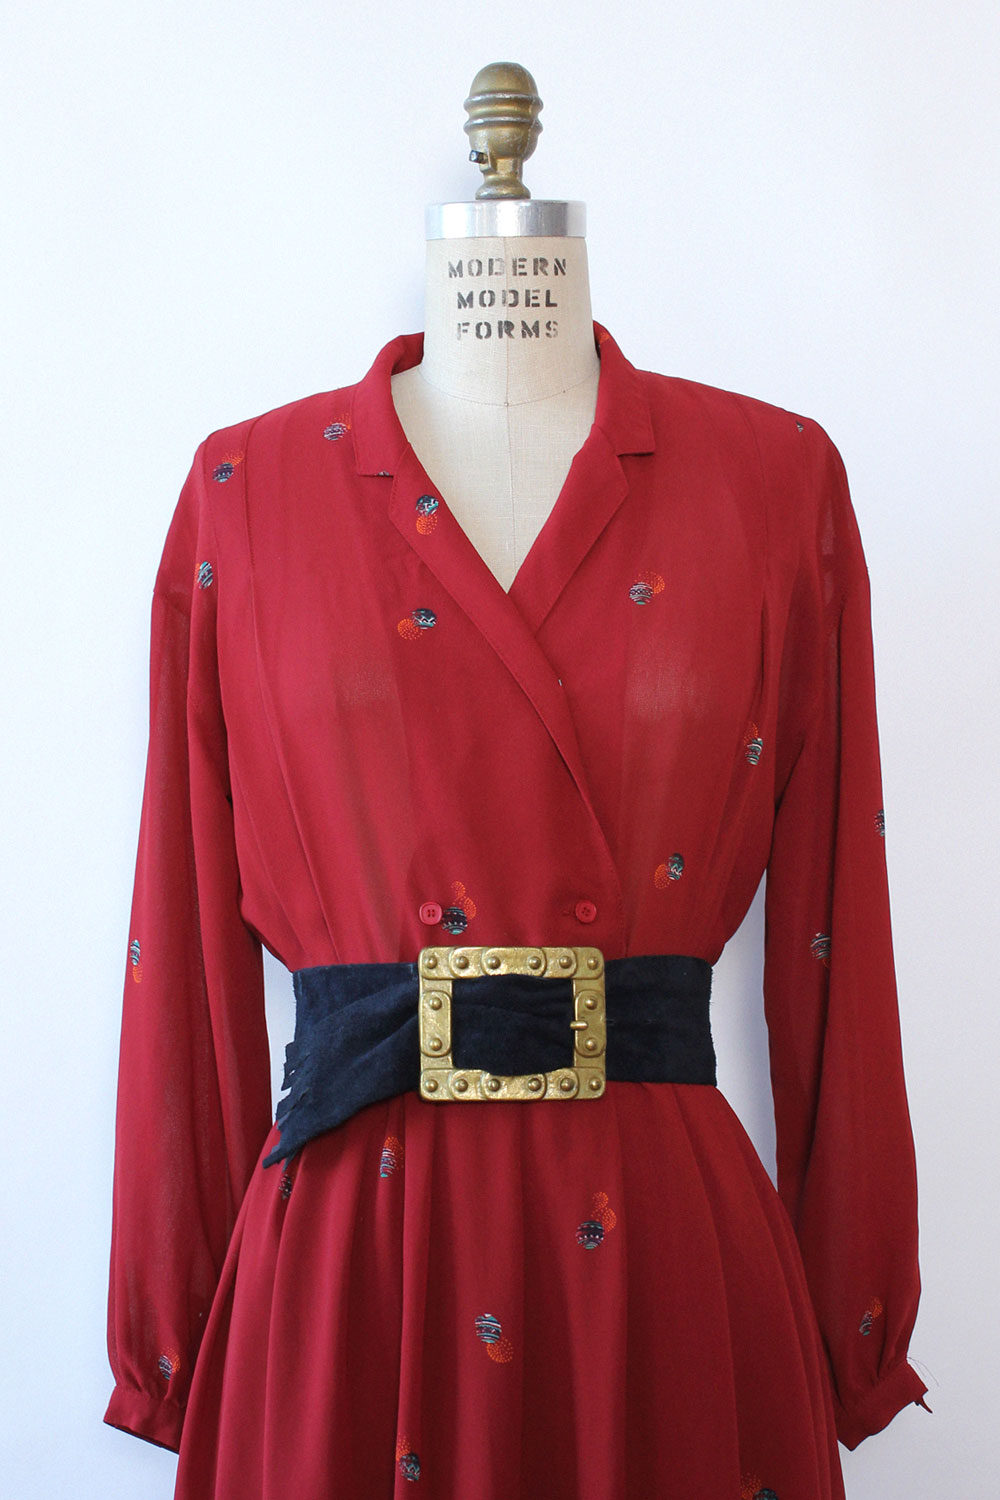 Kantor Berry Secretary Dress M/L